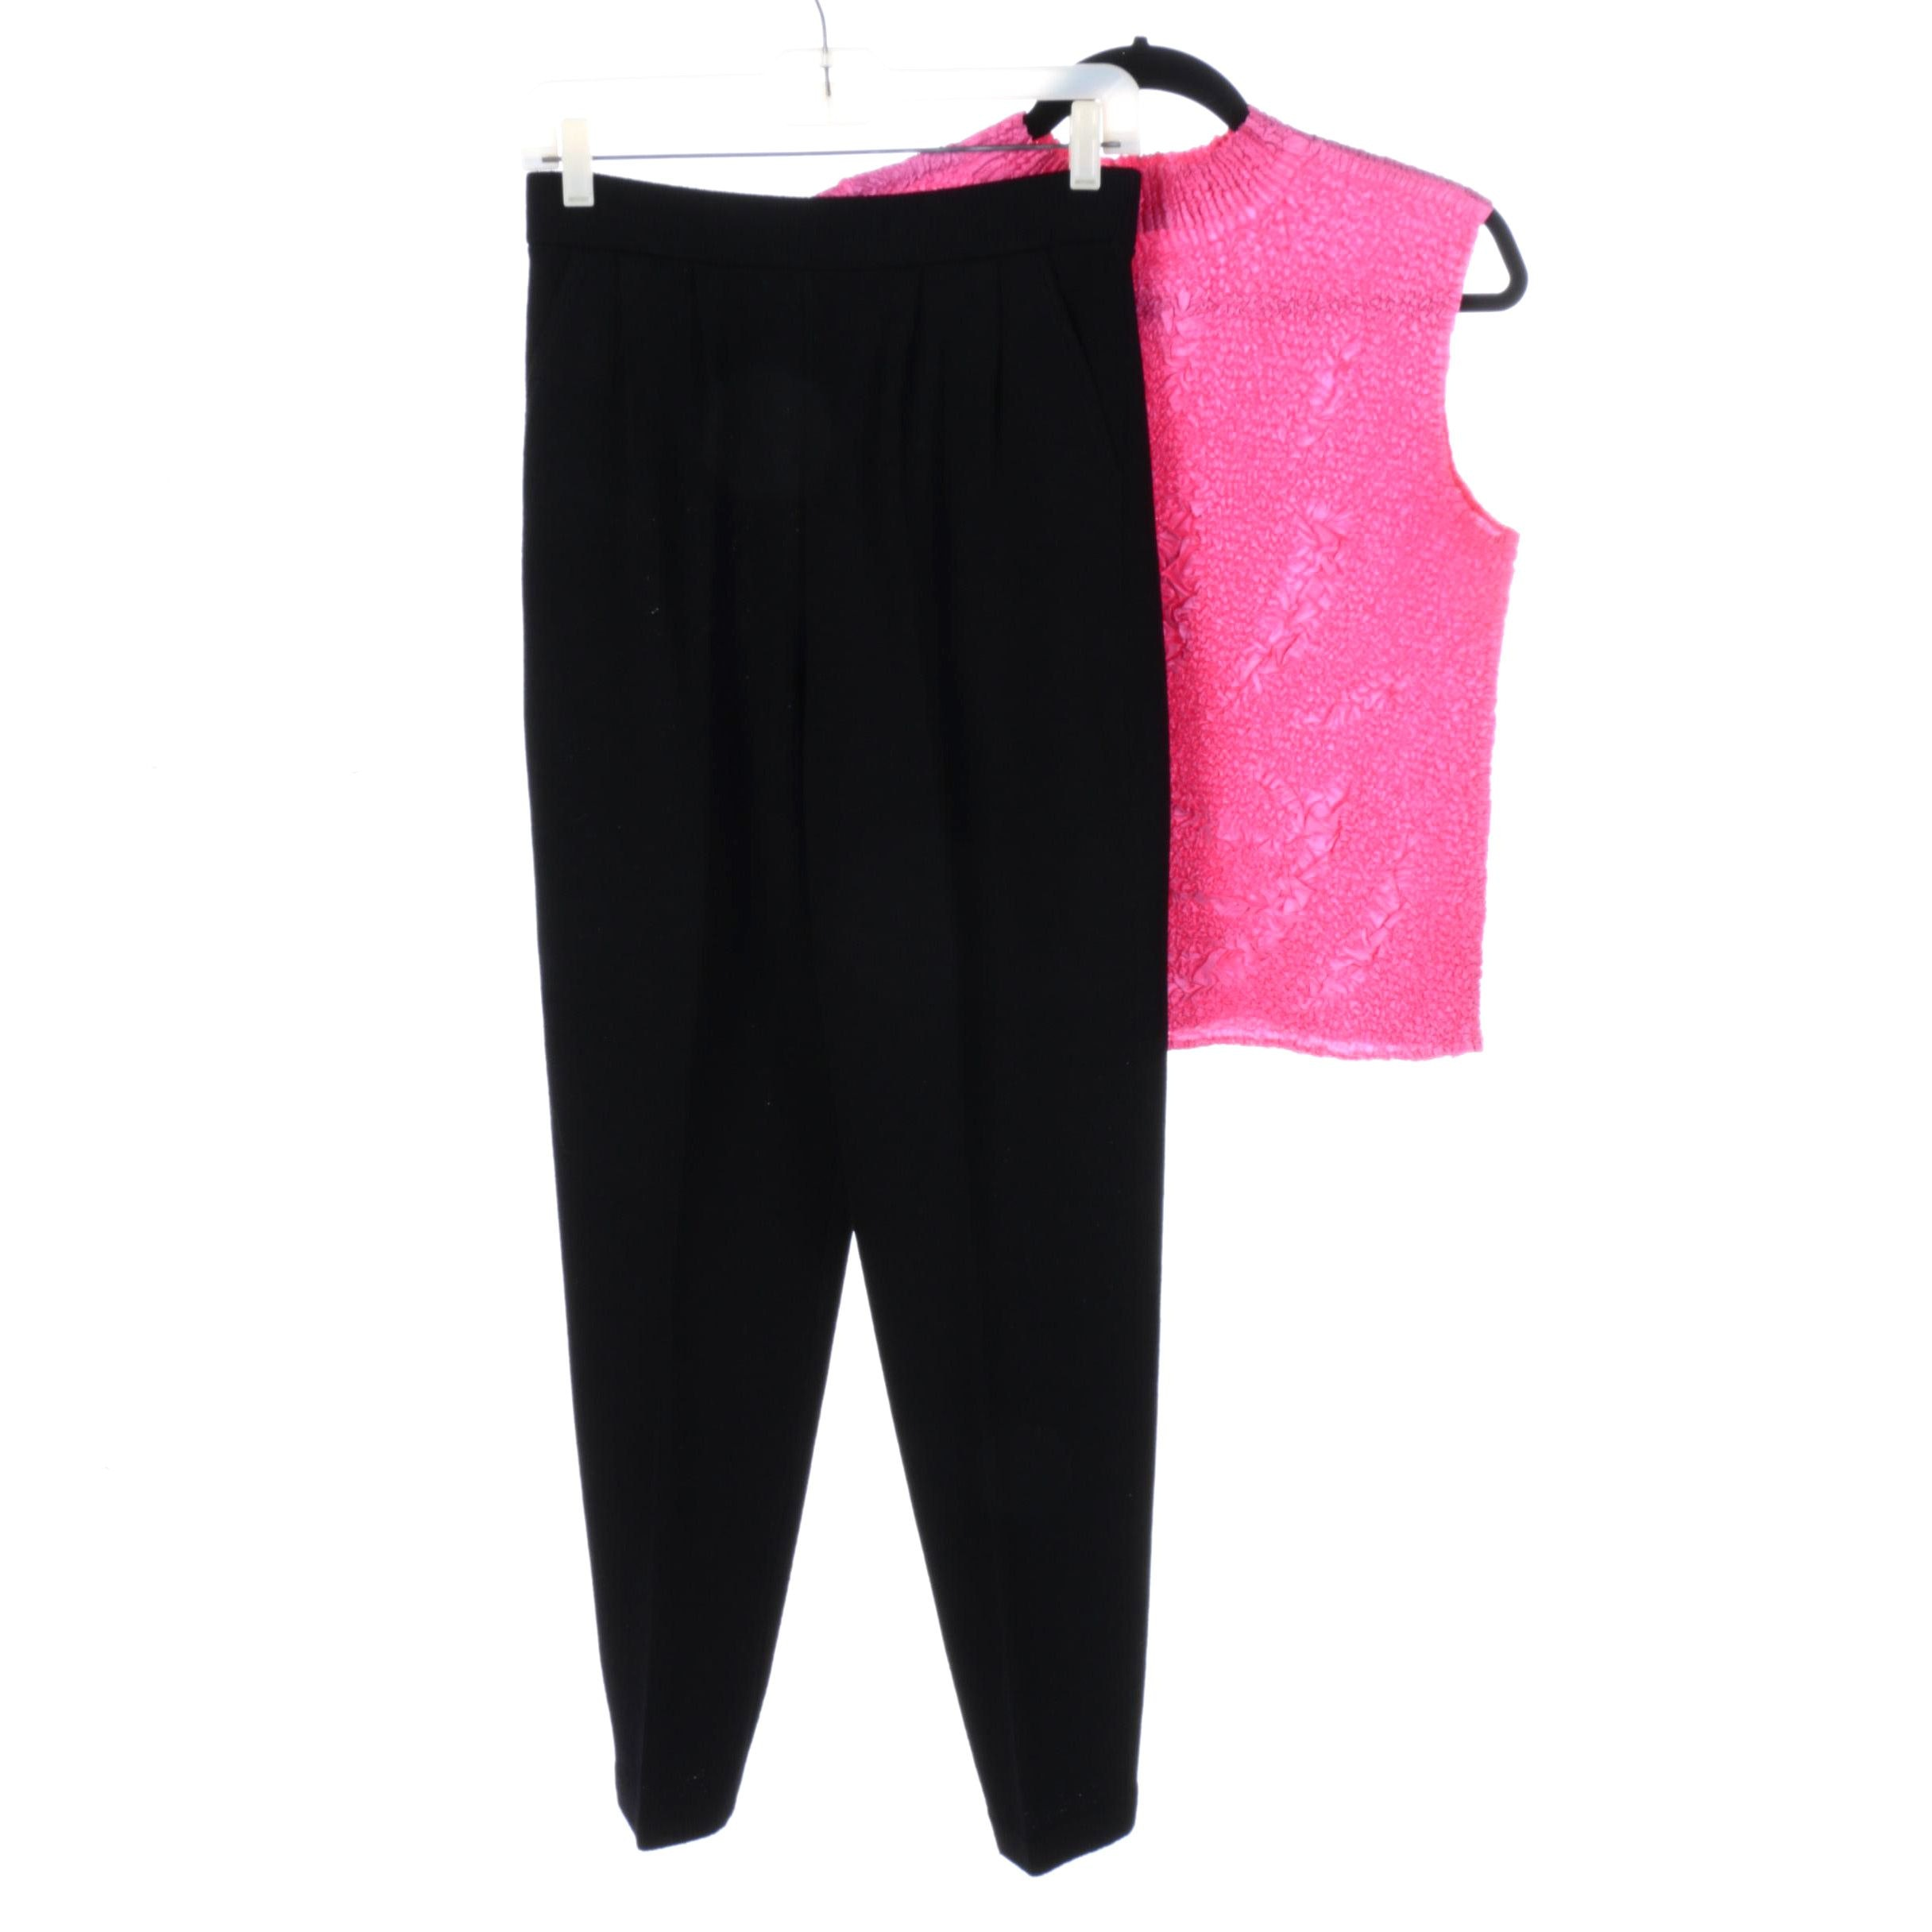 Women's Pink Puckered Stretch Top and Black Knit Pants